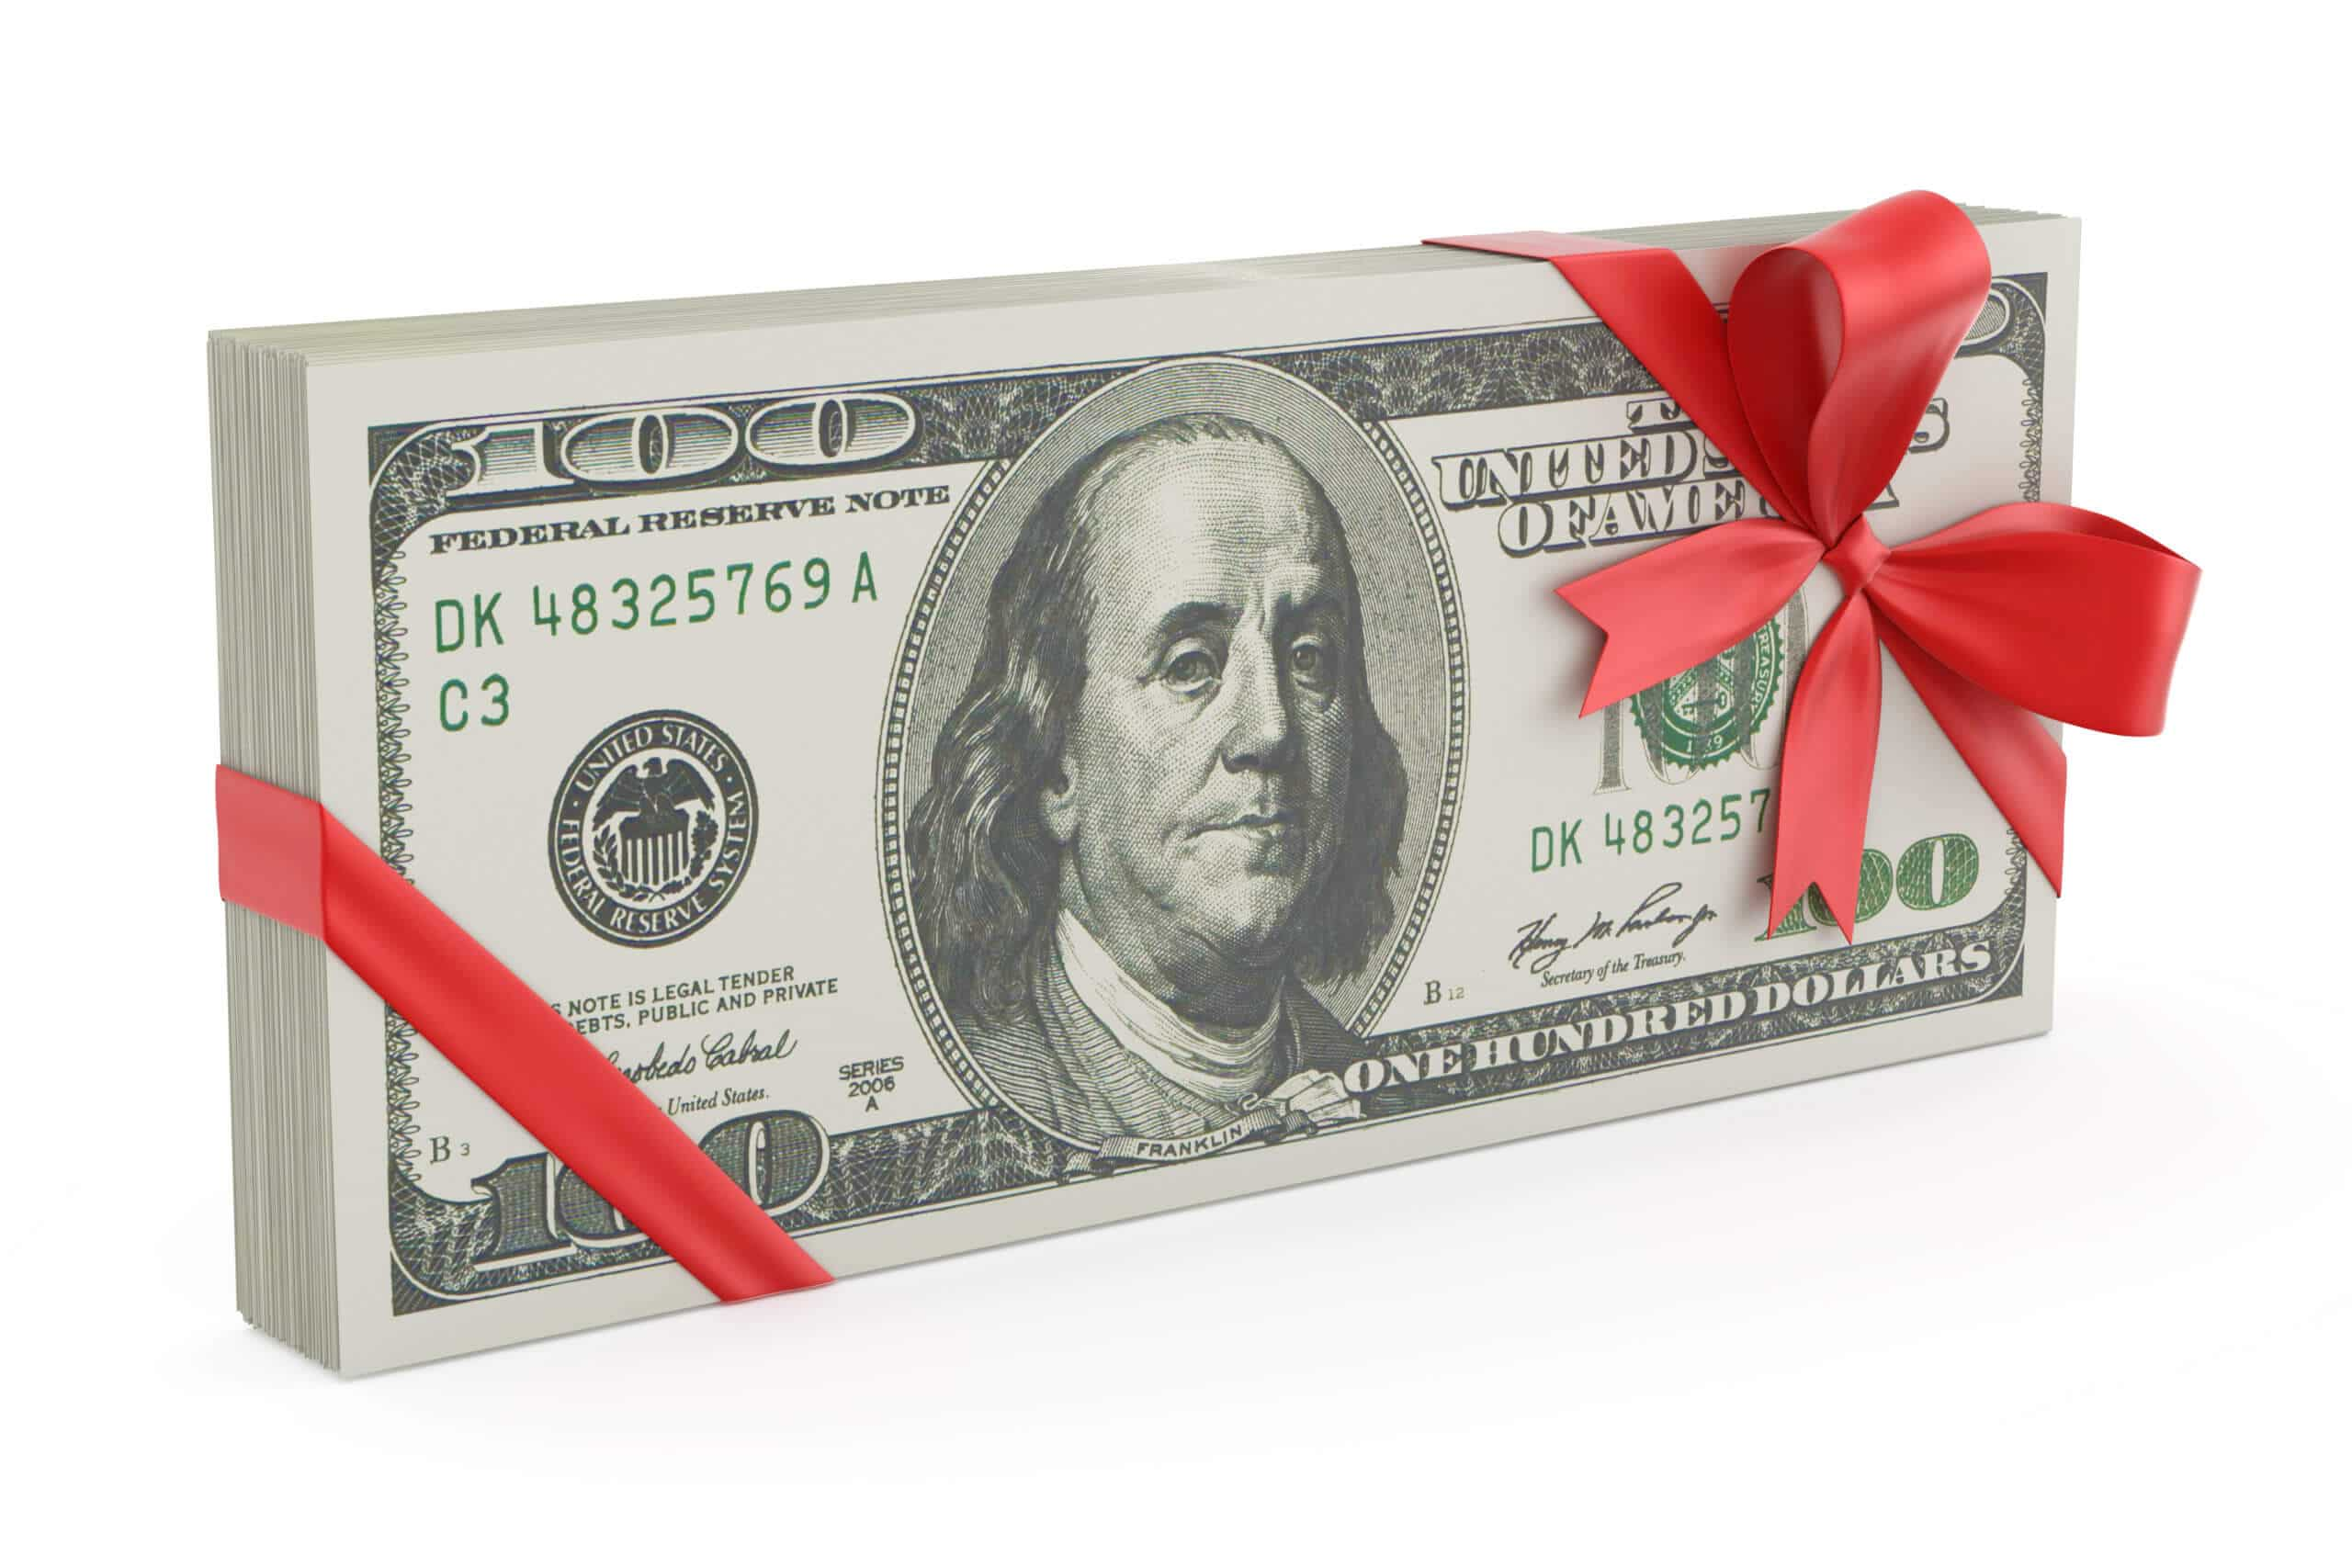 2020 gift tax